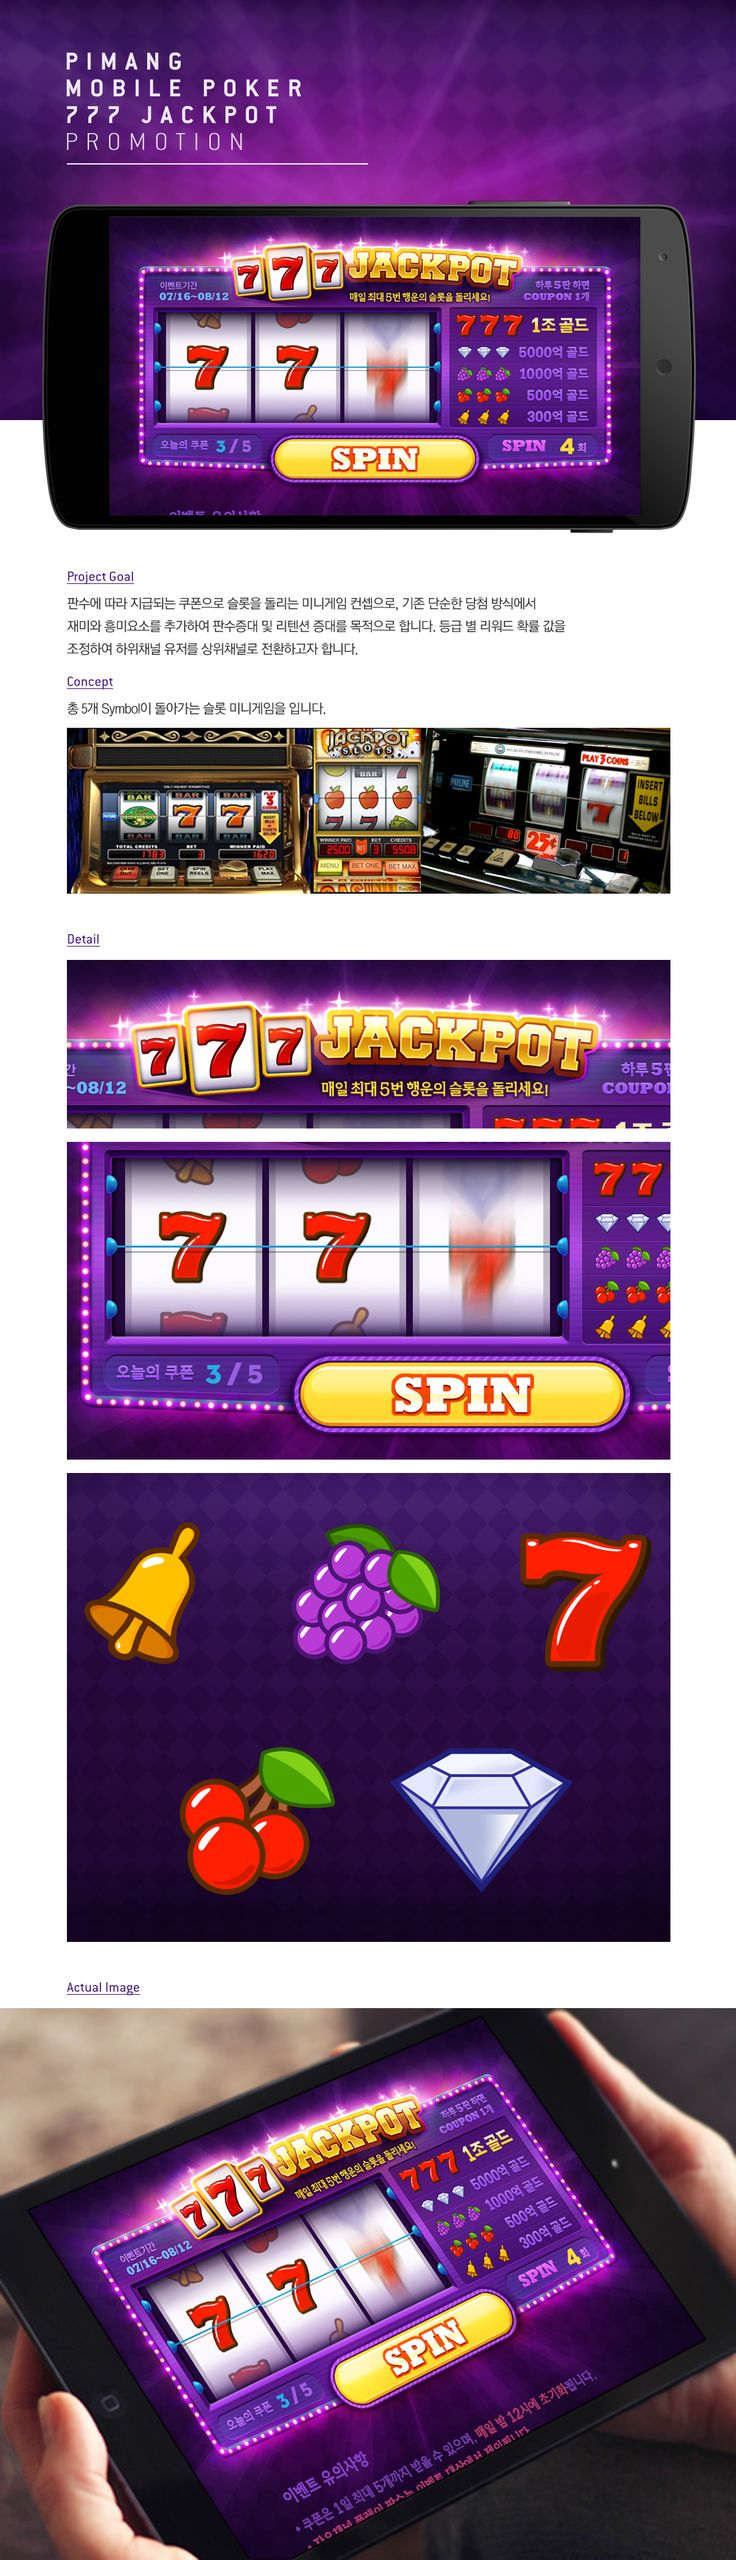 Poker 777 Jackpot slot Promotion on Behance